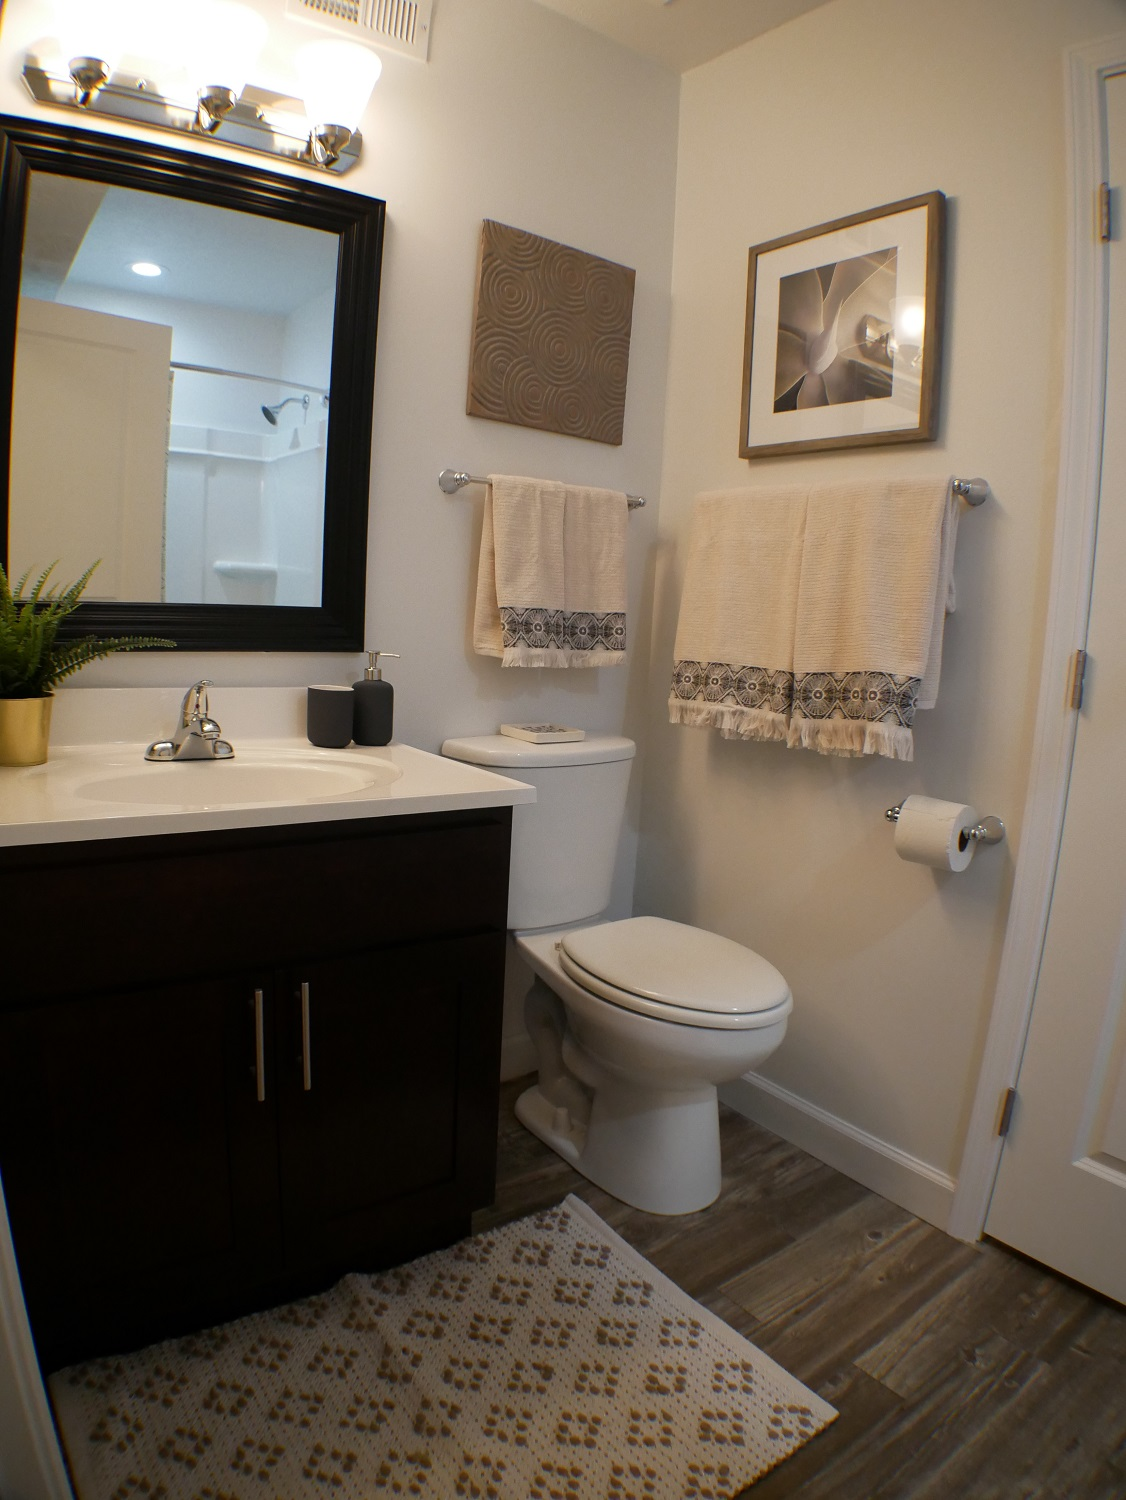 Photos and Video of Galbraith Pointe Apartments in